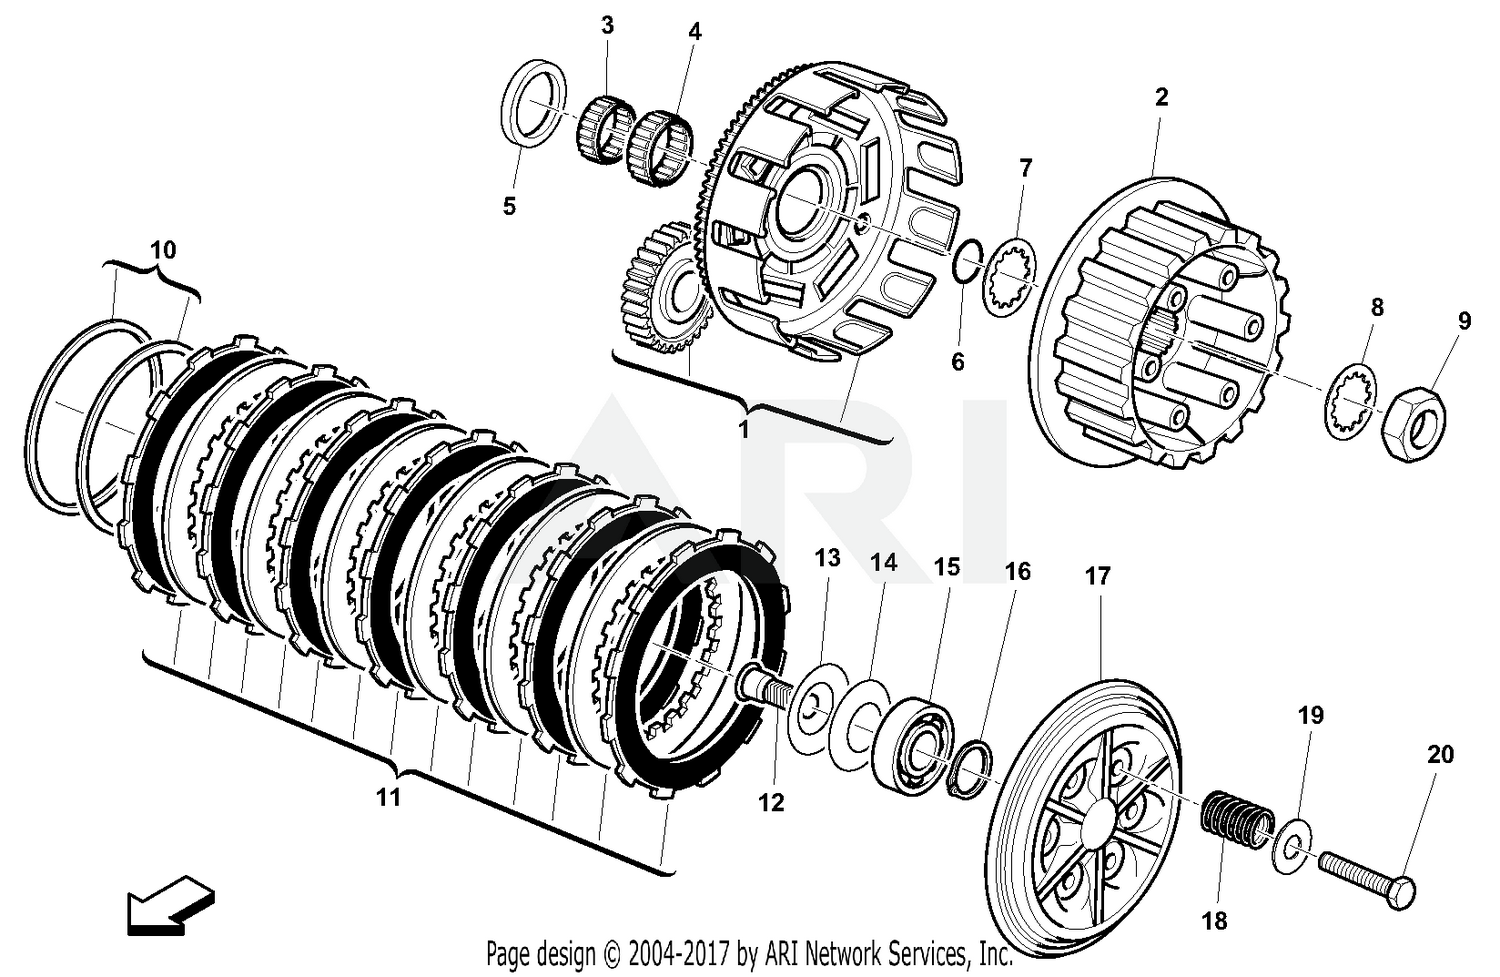 Husqvarna Wiring Diagram For A Motorcycle on tires for motorcycle, alternator for motorcycle, wiring harness for a superbike, cover for motorcycle, seats for motorcycle, oil cooler for motorcycle, brake for motorcycle, automatic transmission for motorcycle, electrical wiring for motorcycle, trickle charger for motorcycle, best oil for motorcycle, capacitor for motorcycle, tools for motorcycle, spark plug for motorcycle, electric starter for motorcycle, speedometer for motorcycle, wiring loom harness symbols, cable for motorcycle, switch for motorcycle, turn signals for motorcycle,